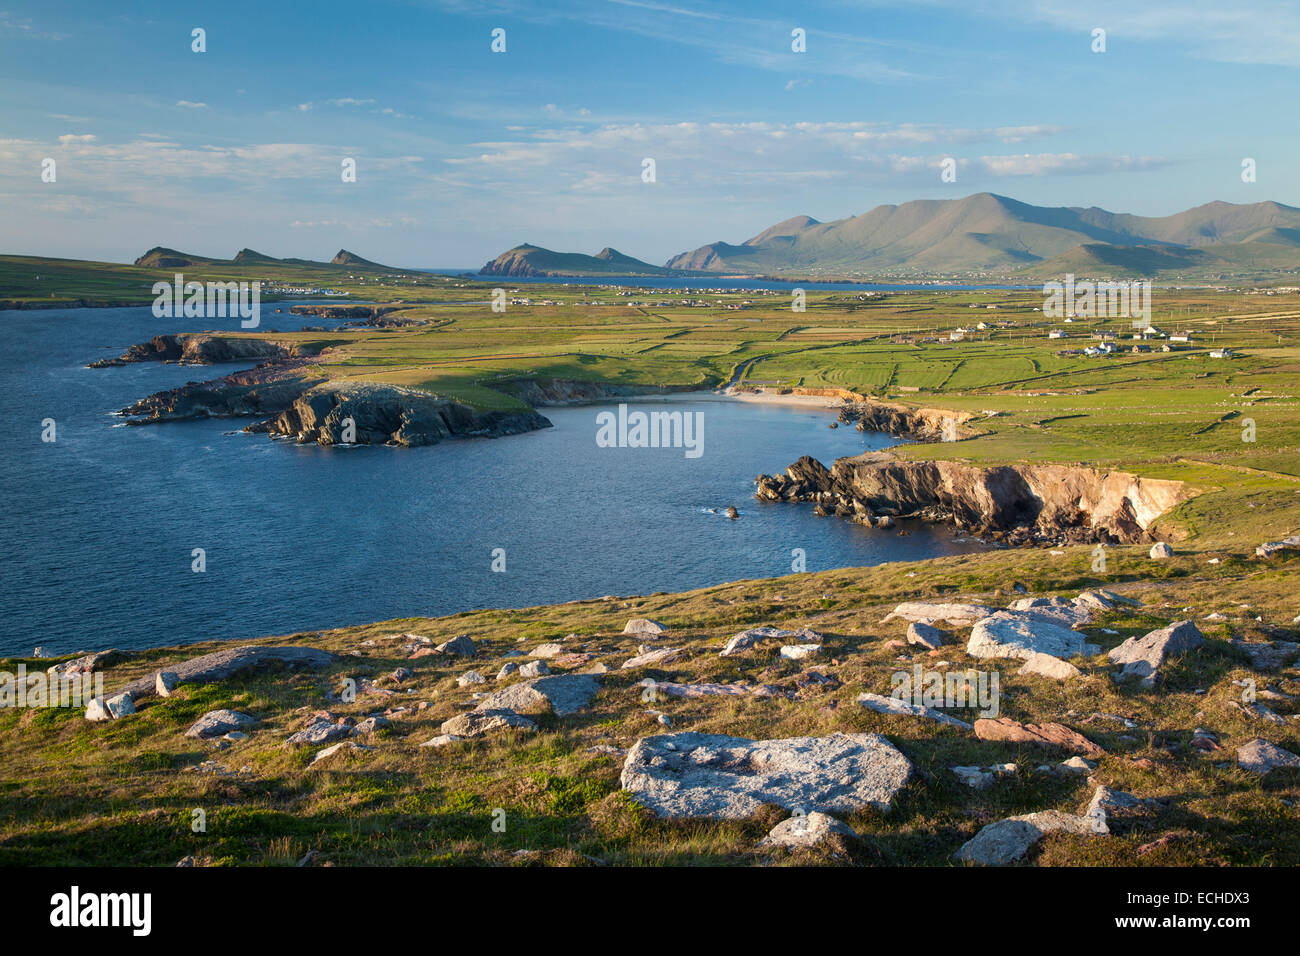 View of Brandon Mountain and the Dingle Peninsula from Clogher Head, County Kerry, Ireland. - Stock Image